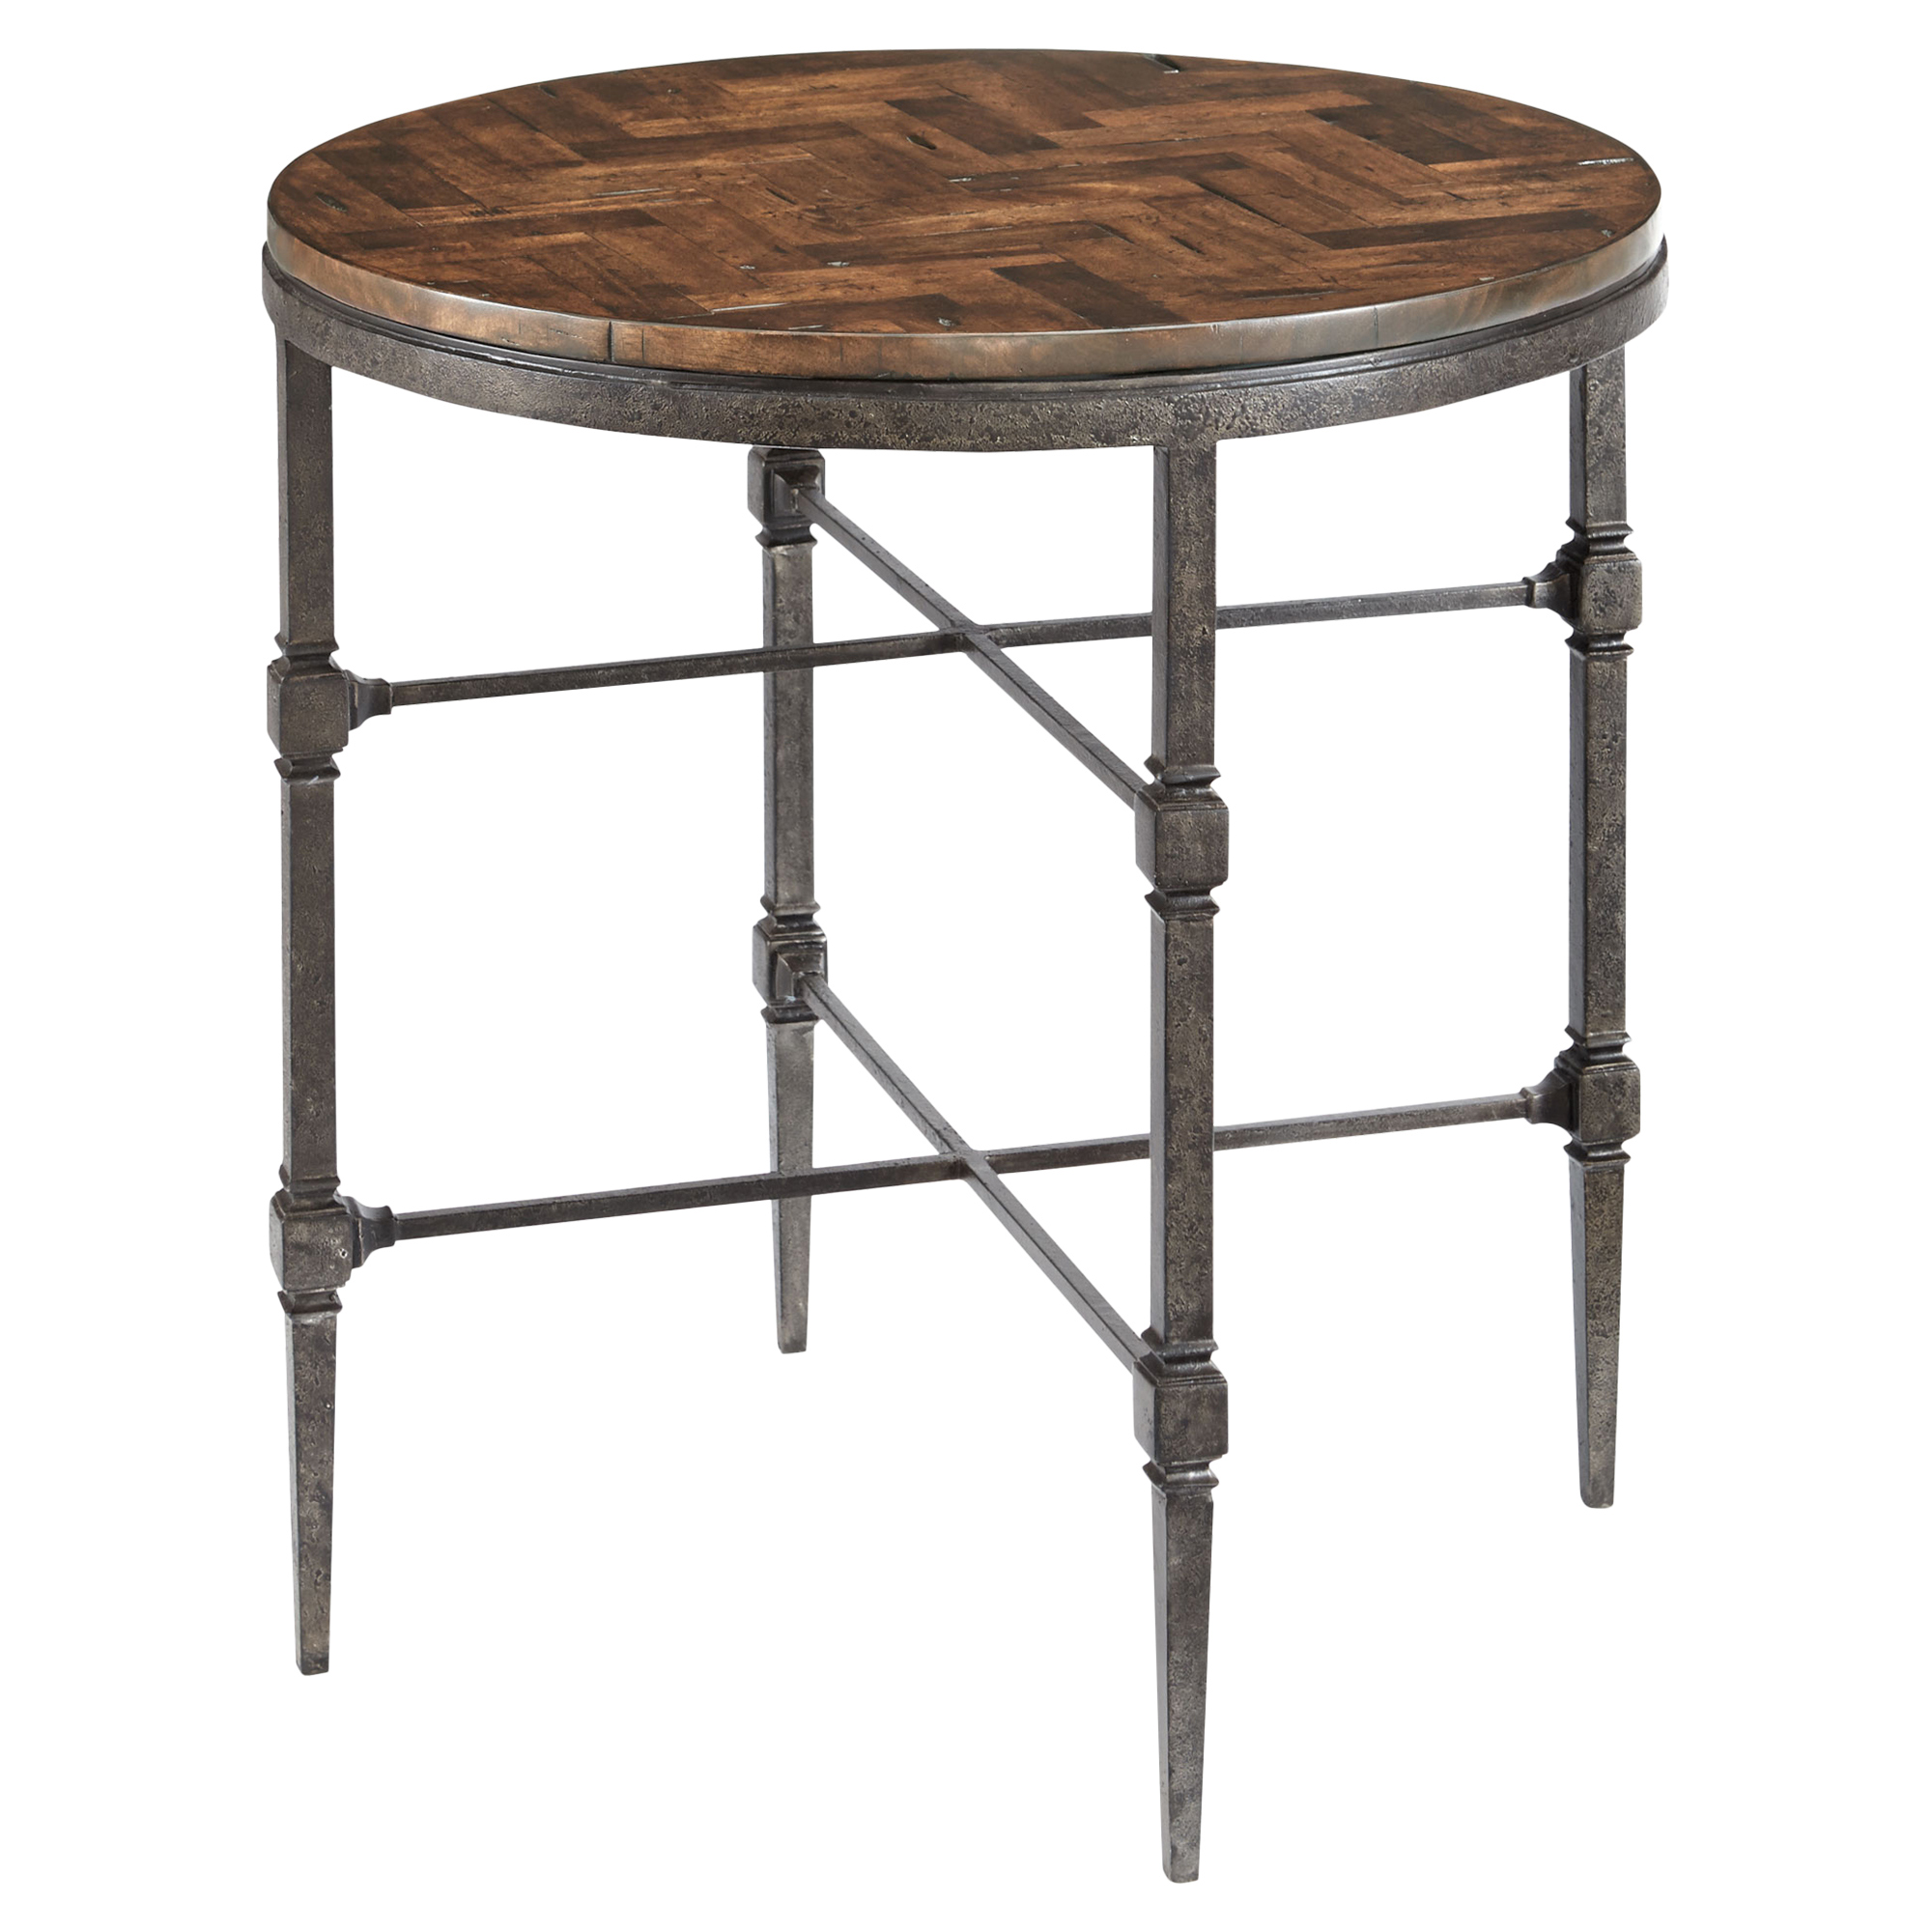 Doyle Lodge Herringbone Wood Blackened Steel End Table